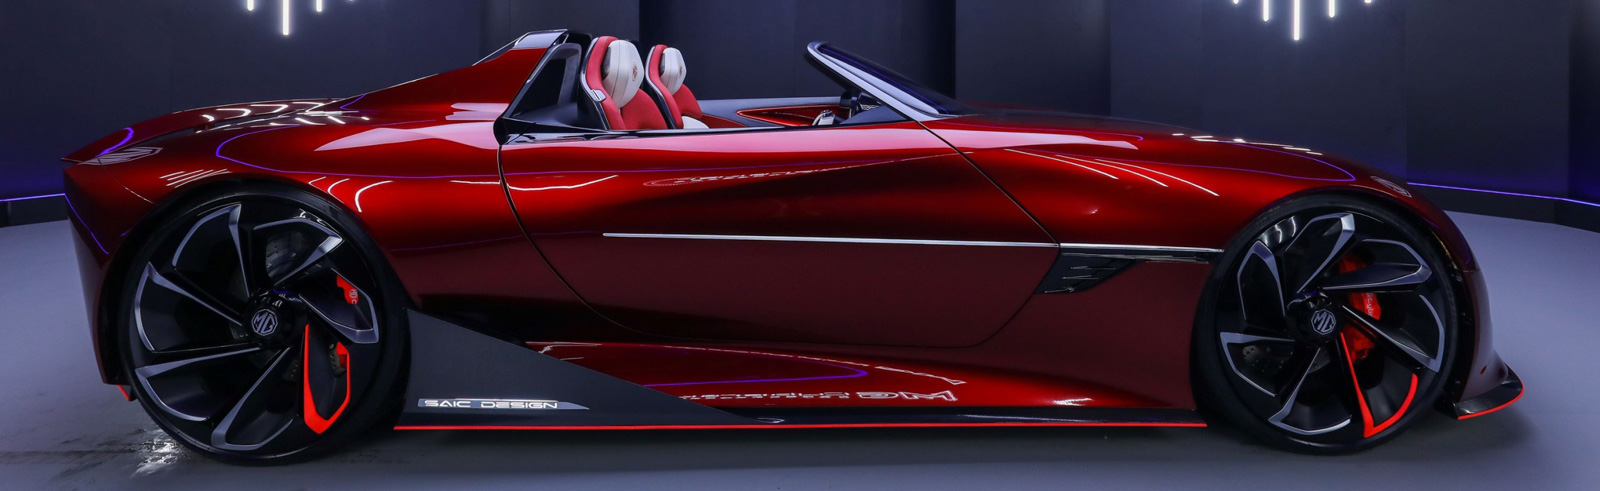 The MG Cyberster concept with module-less battery and 800 km of range has been unveiled